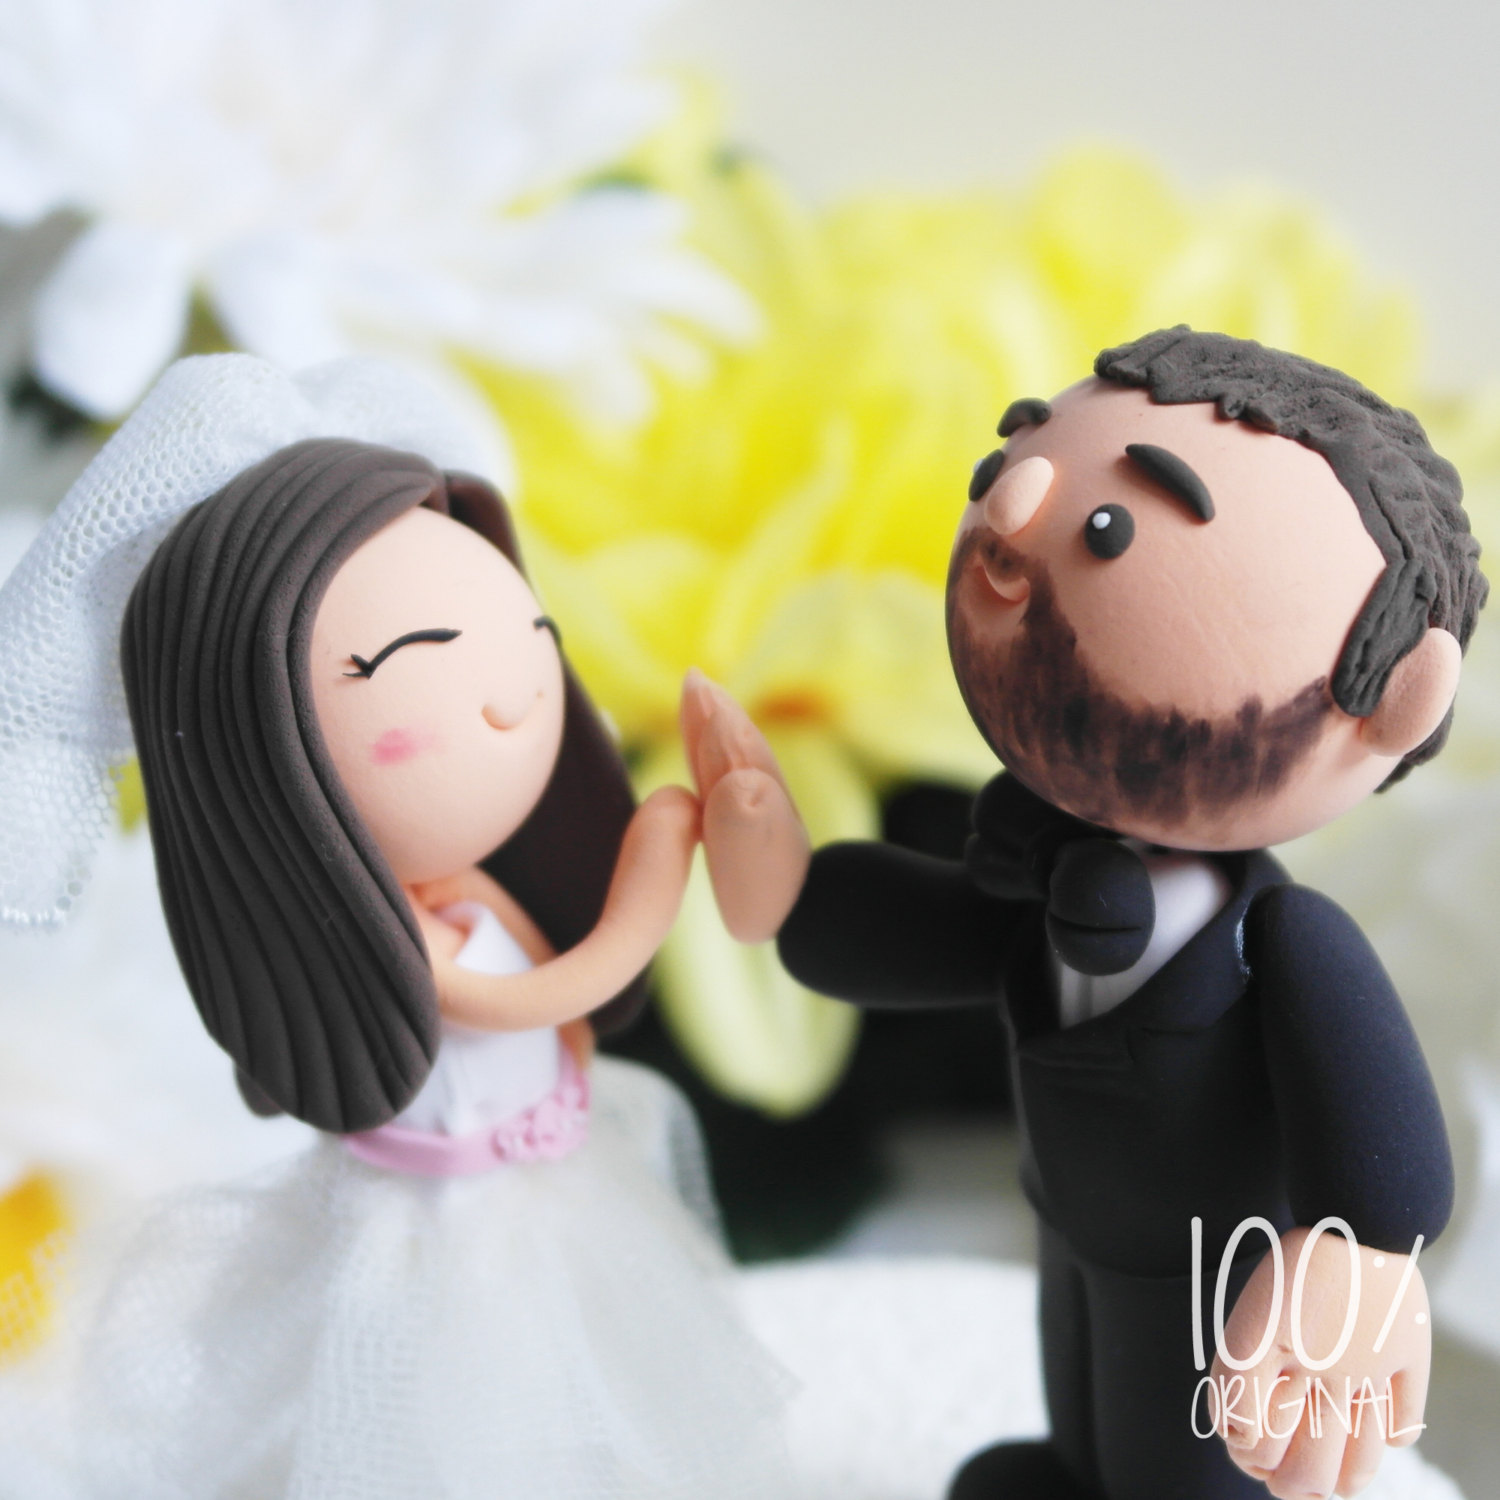 high five cake topper - 9 Adorable Custom Made Cake Toppers via https://emmalinebride.com/decor/custom-made-cake-toppers/